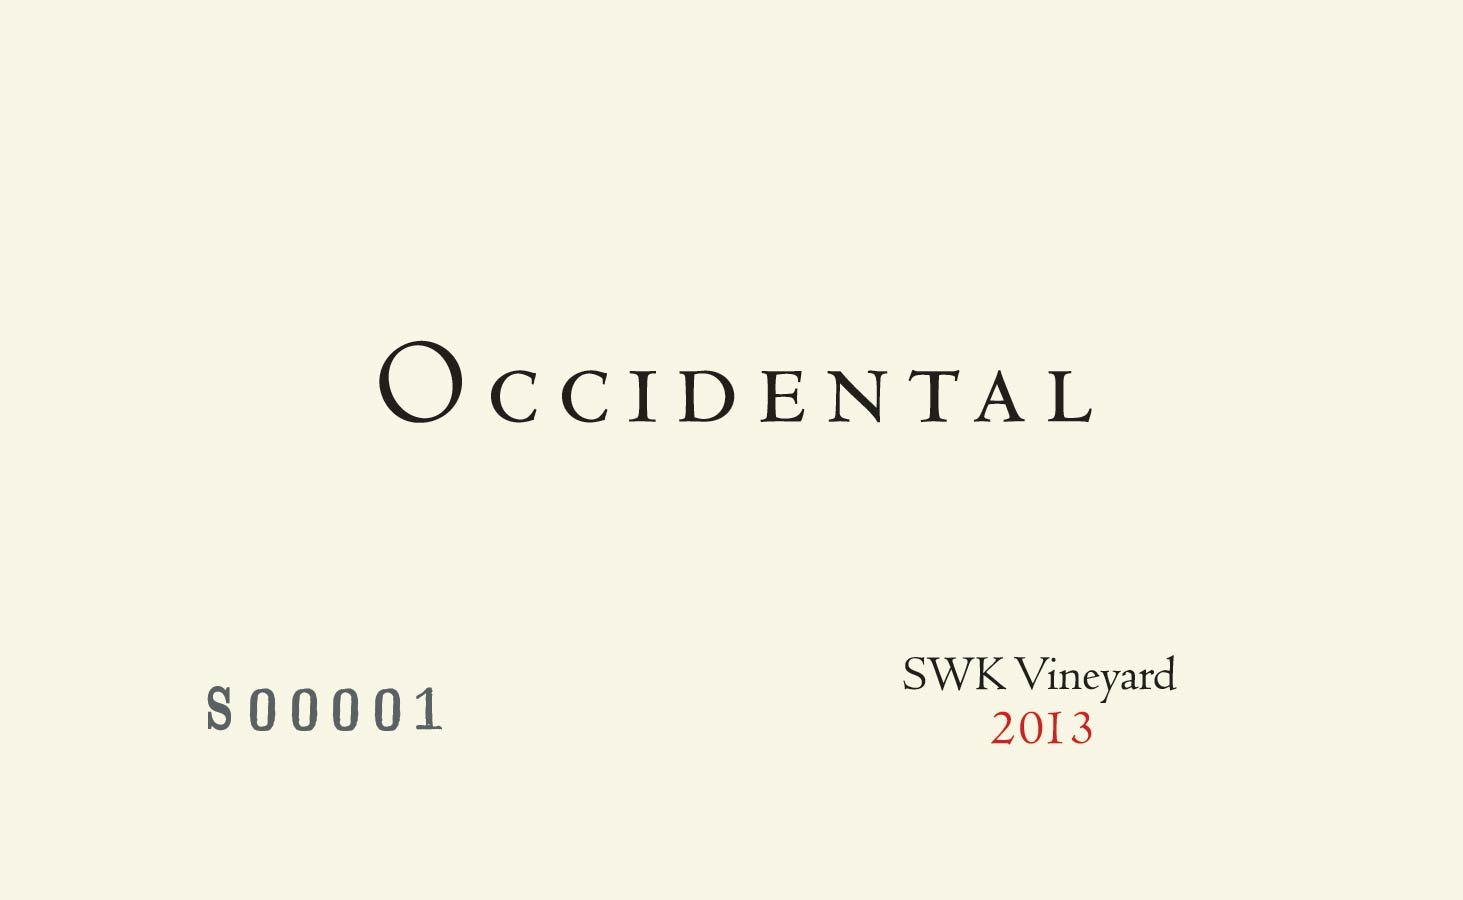 2014 Kistler Occidental Pinot Noir SWK Vineyard